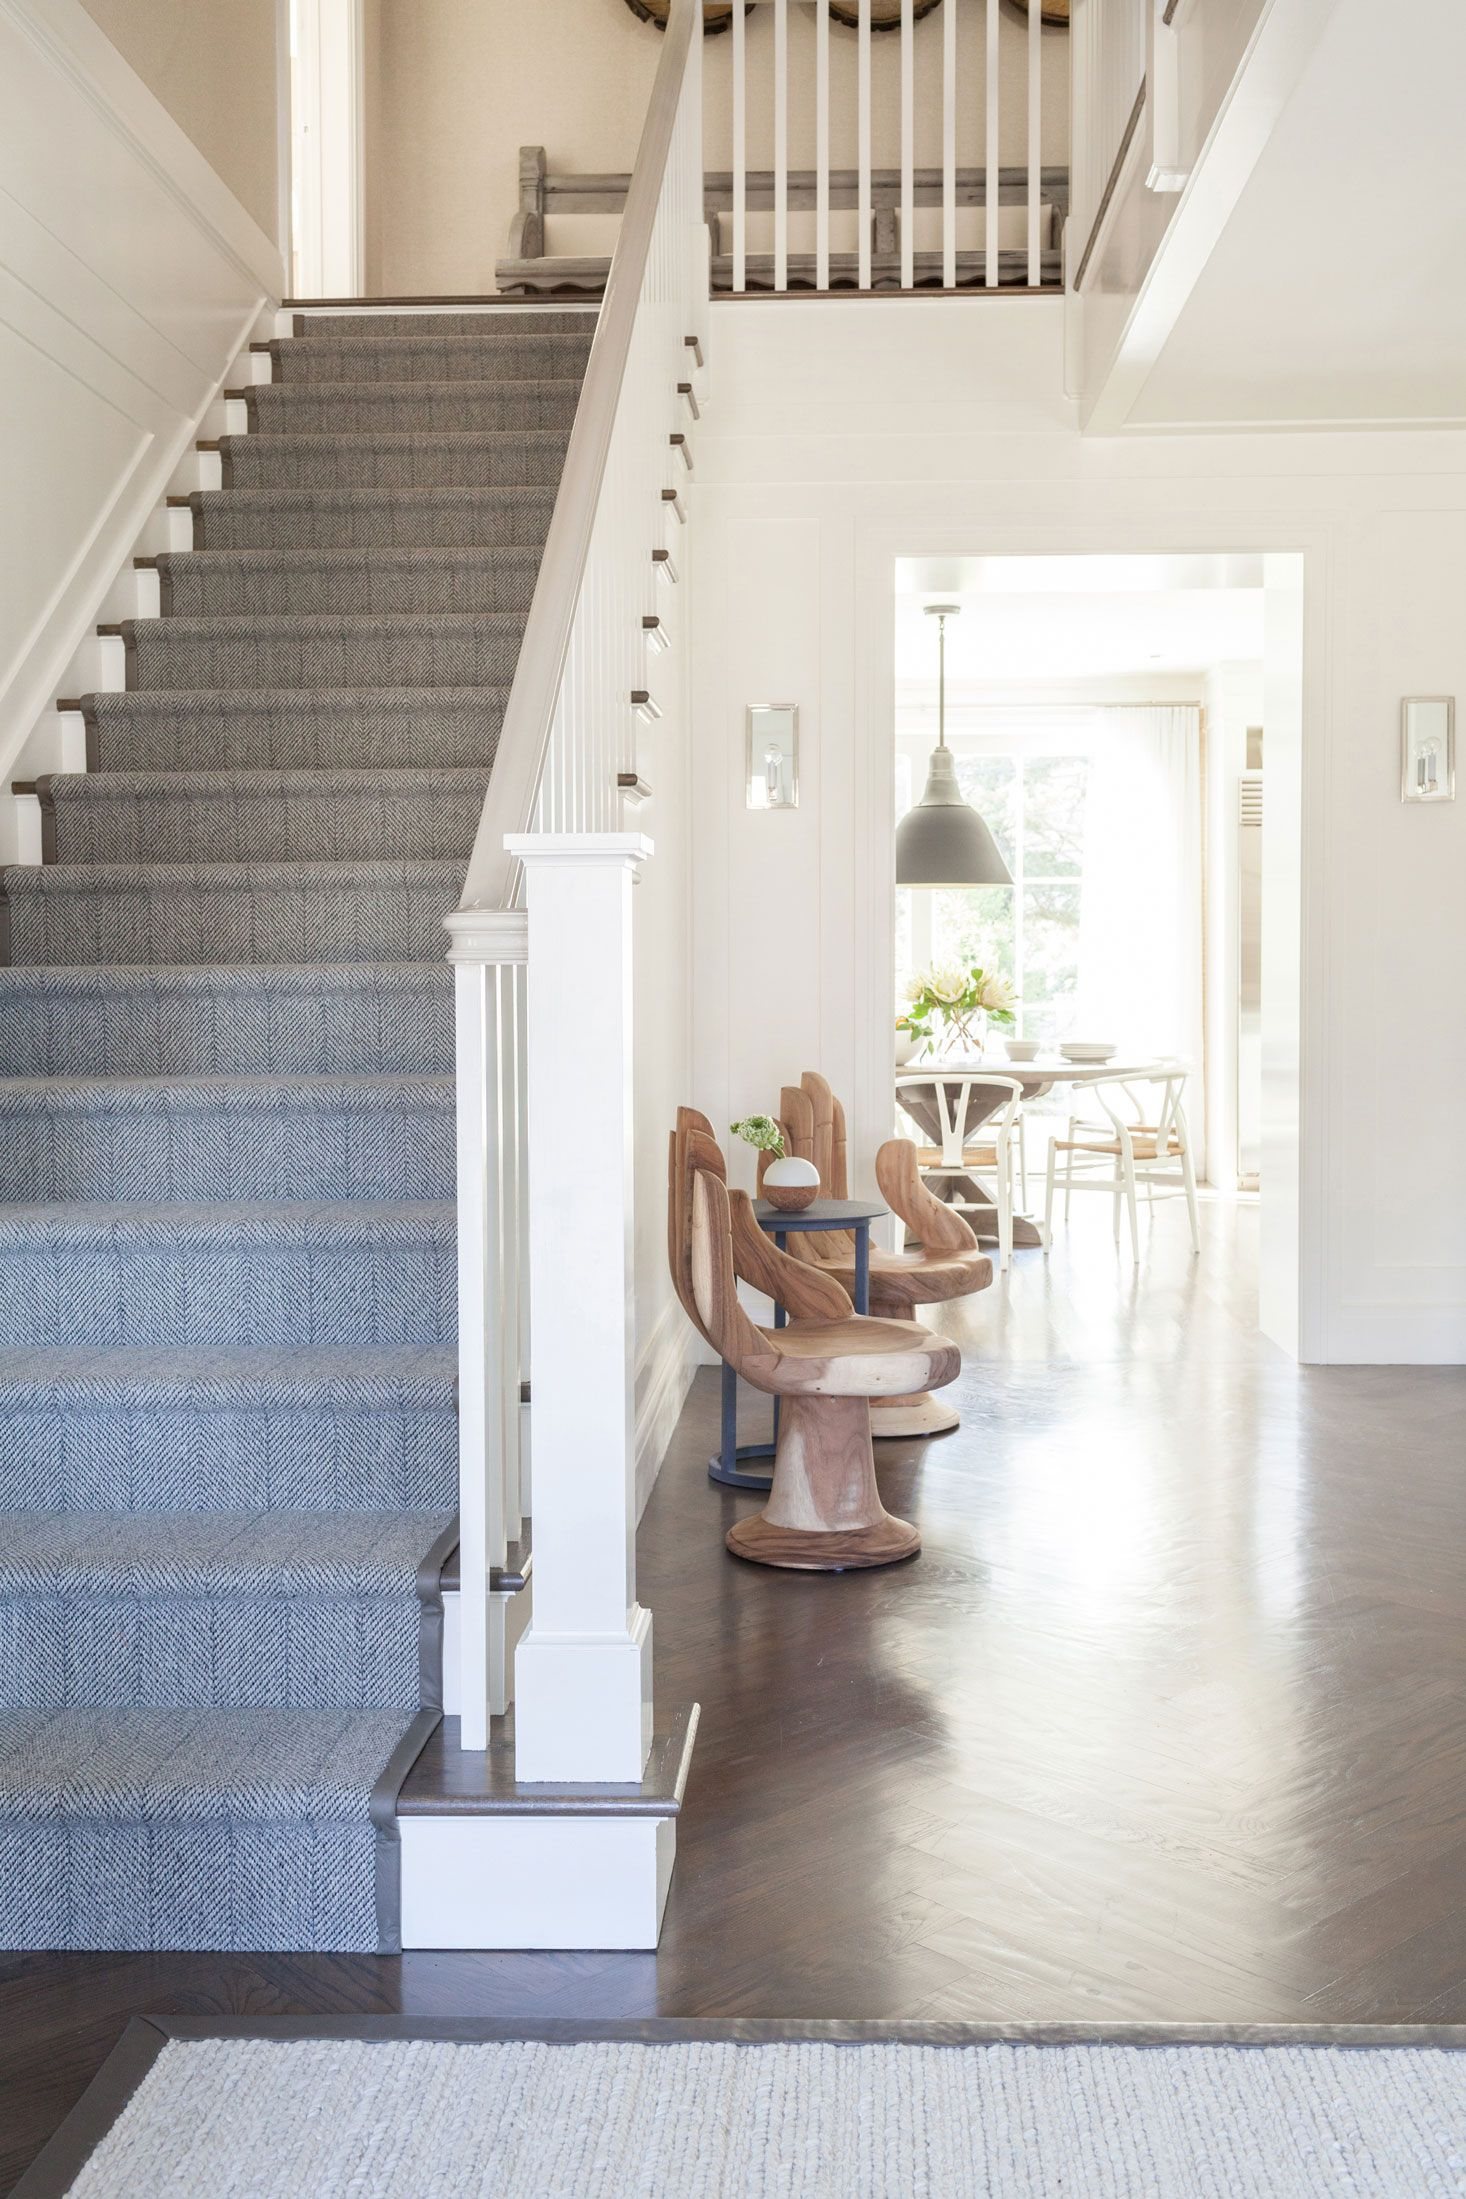 Traditional Treads With A Chunky Newel Post Give This Stairwell A Modern Twist New England Farmhouse Modern Farmhouse Interiors Modern Farmhouse Style